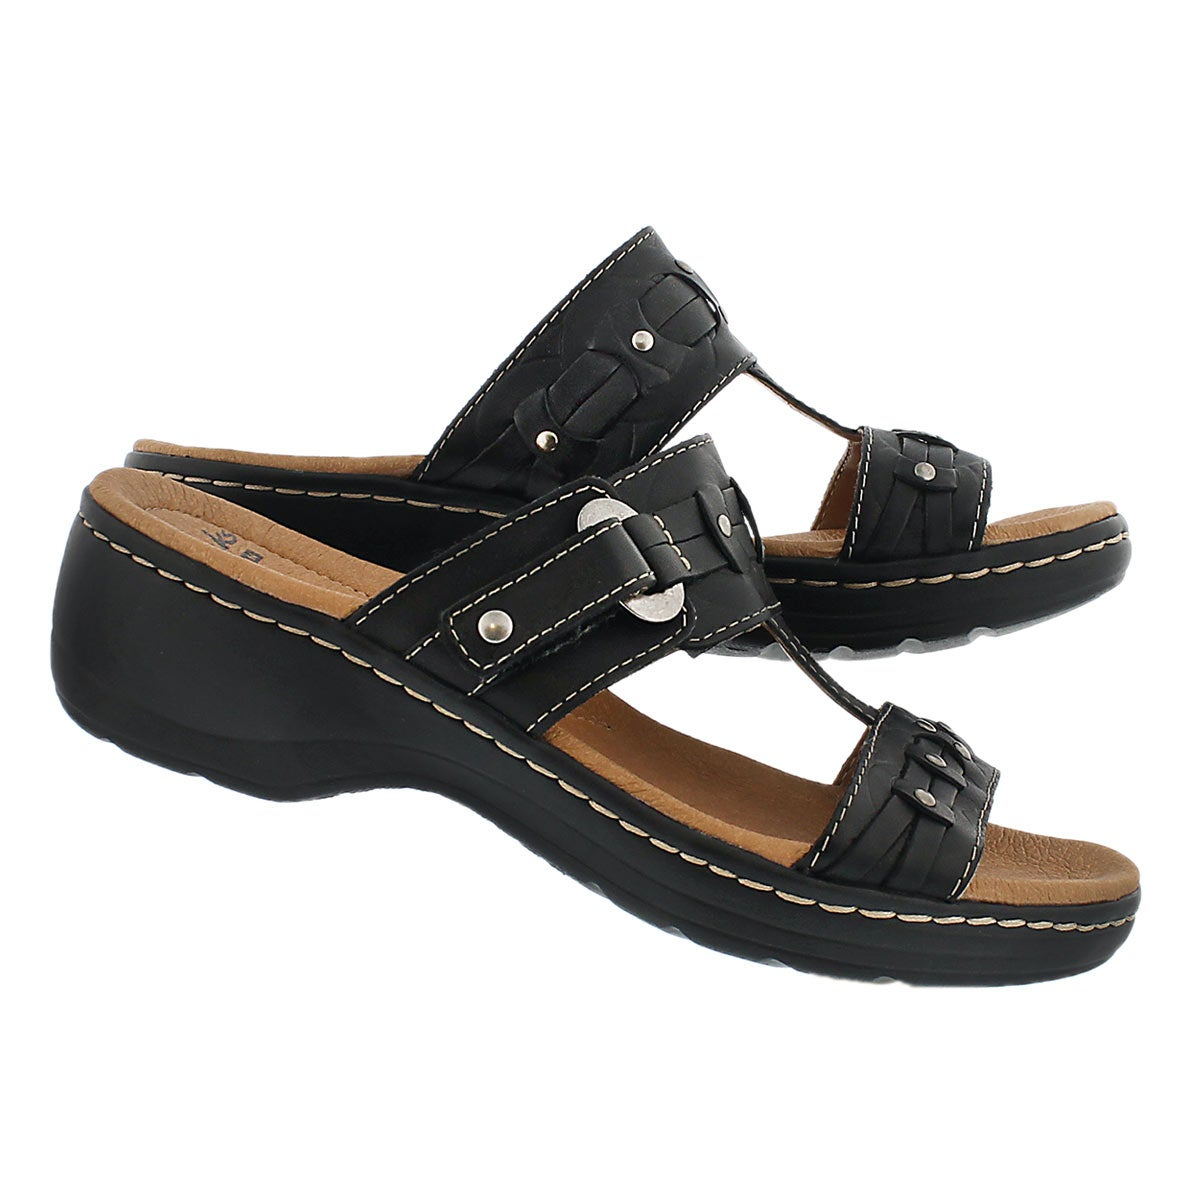 Lds Hayla Young blk casual slide sandal